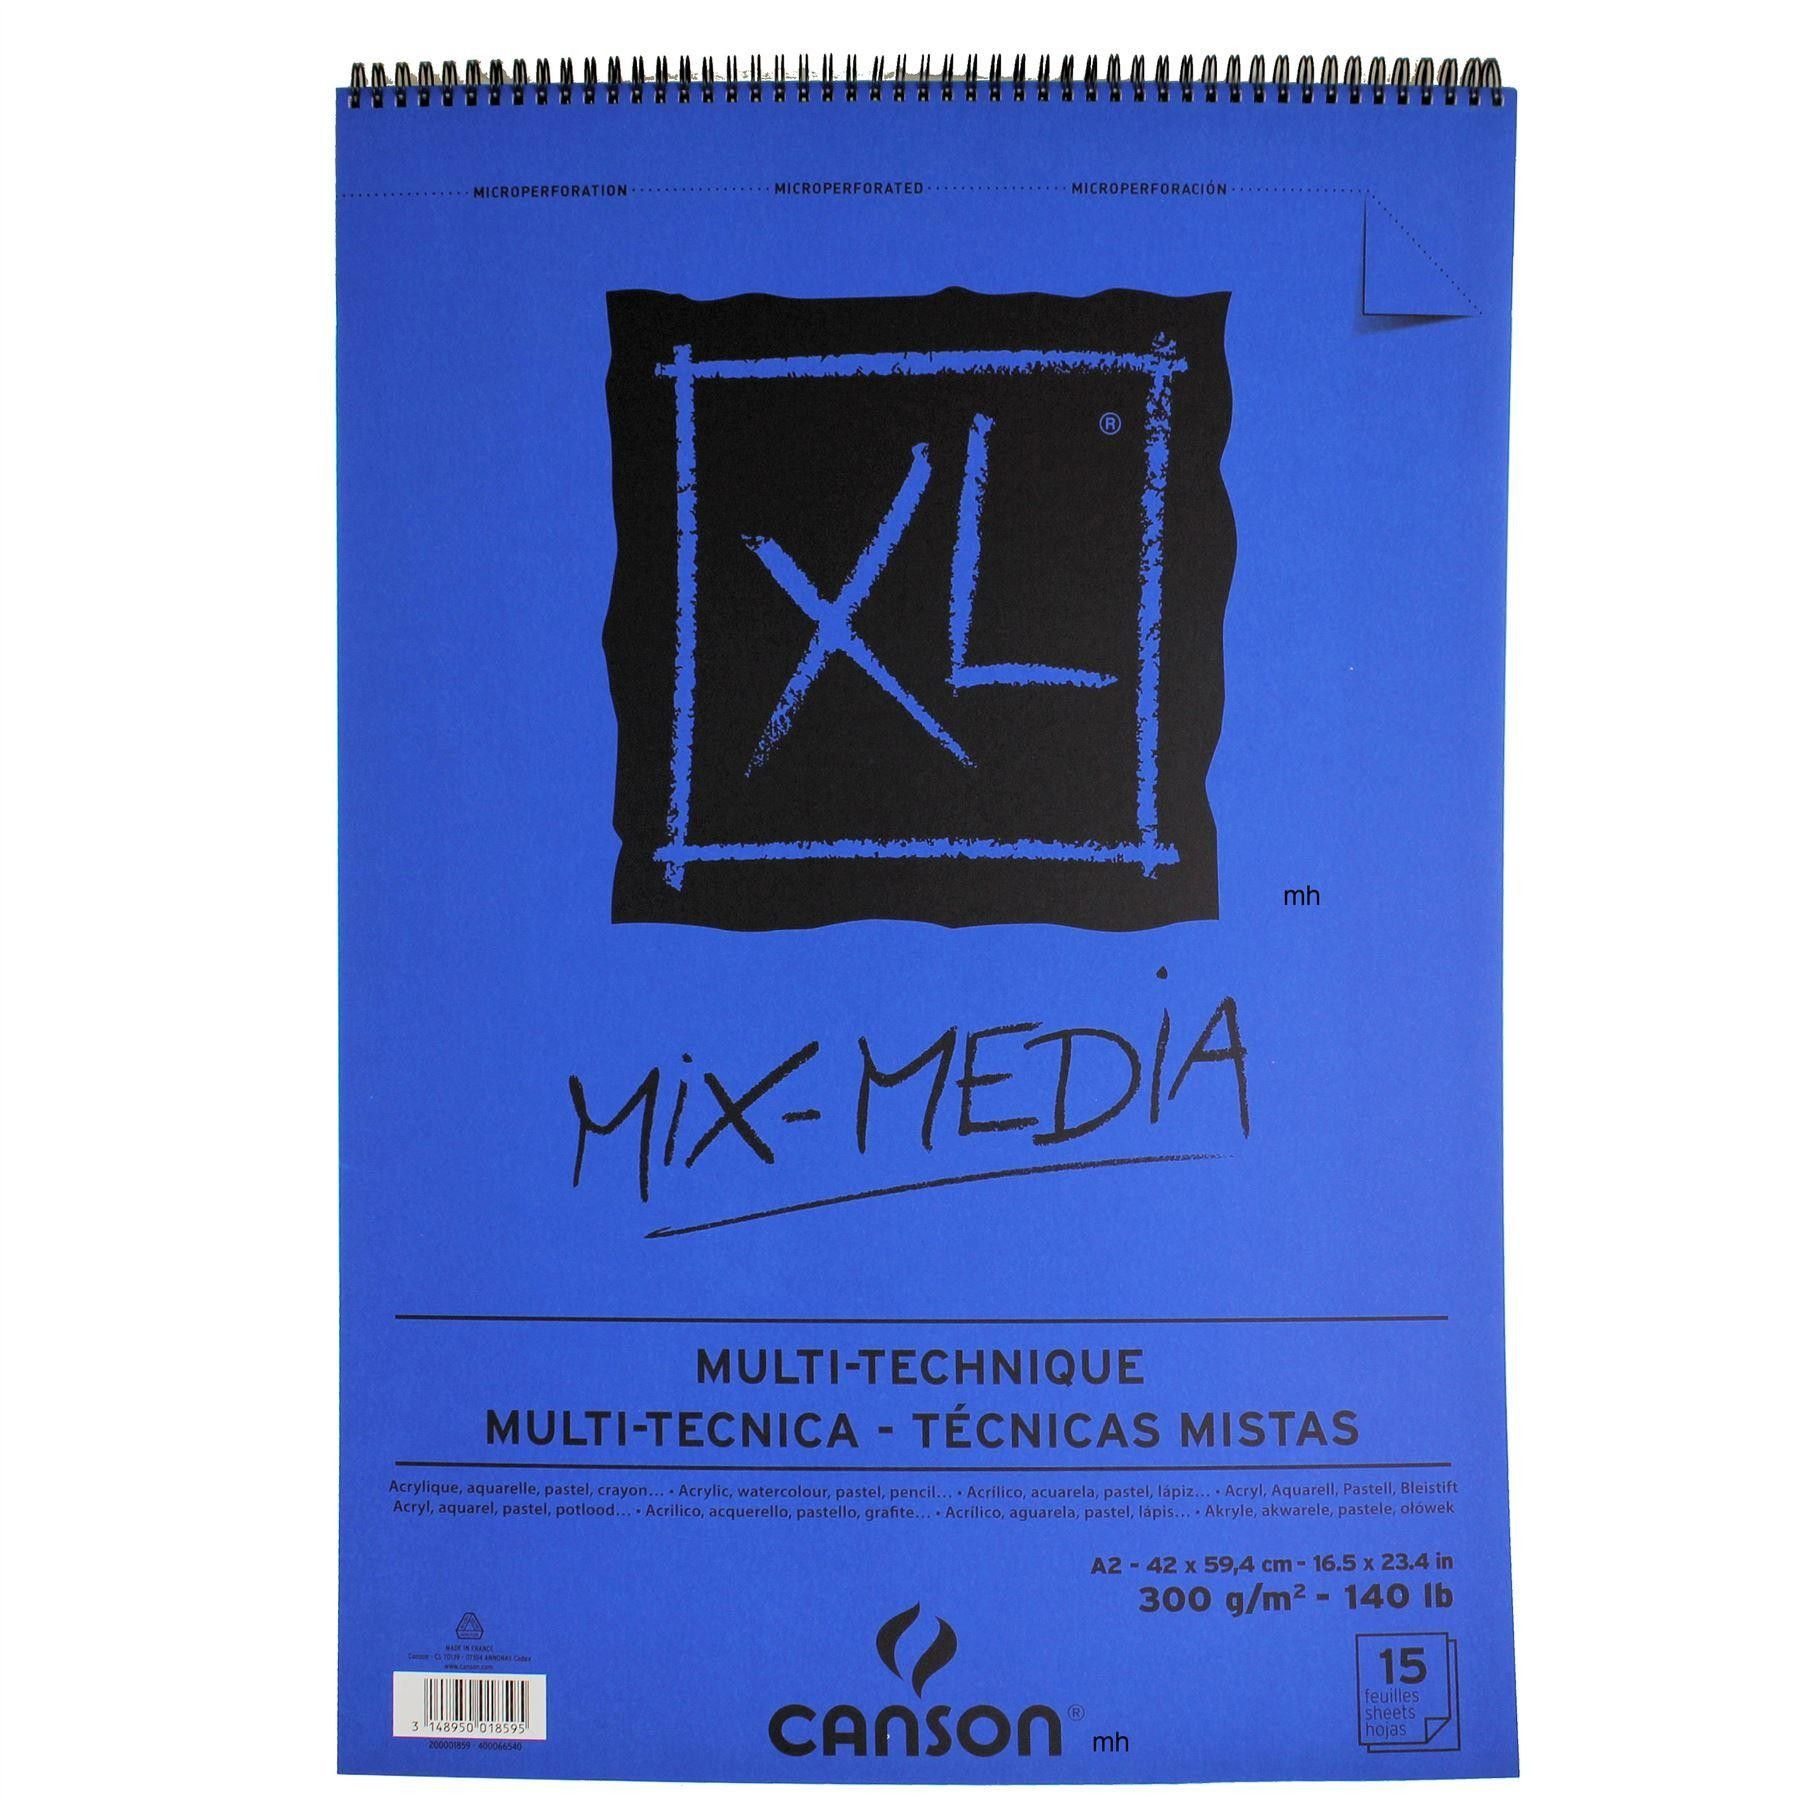 Canson Xl Mixed Media Paper Pad 300gsm 30 Sheets Sketch Paper